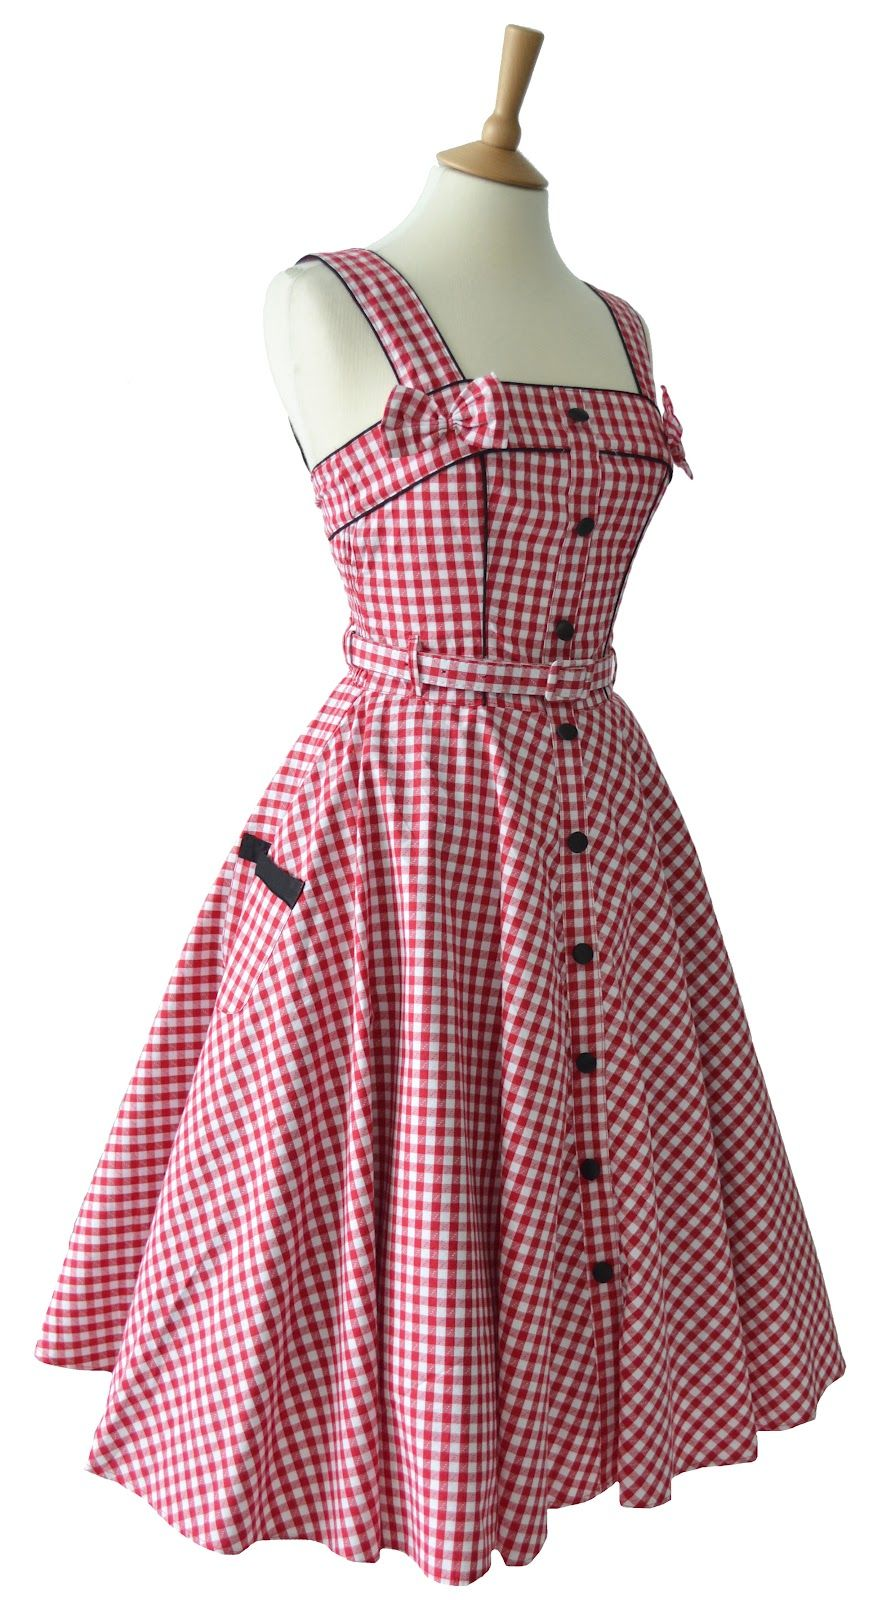 vintage dresses | Just Added to NBVCC : 1950s Vintage Dresses ...